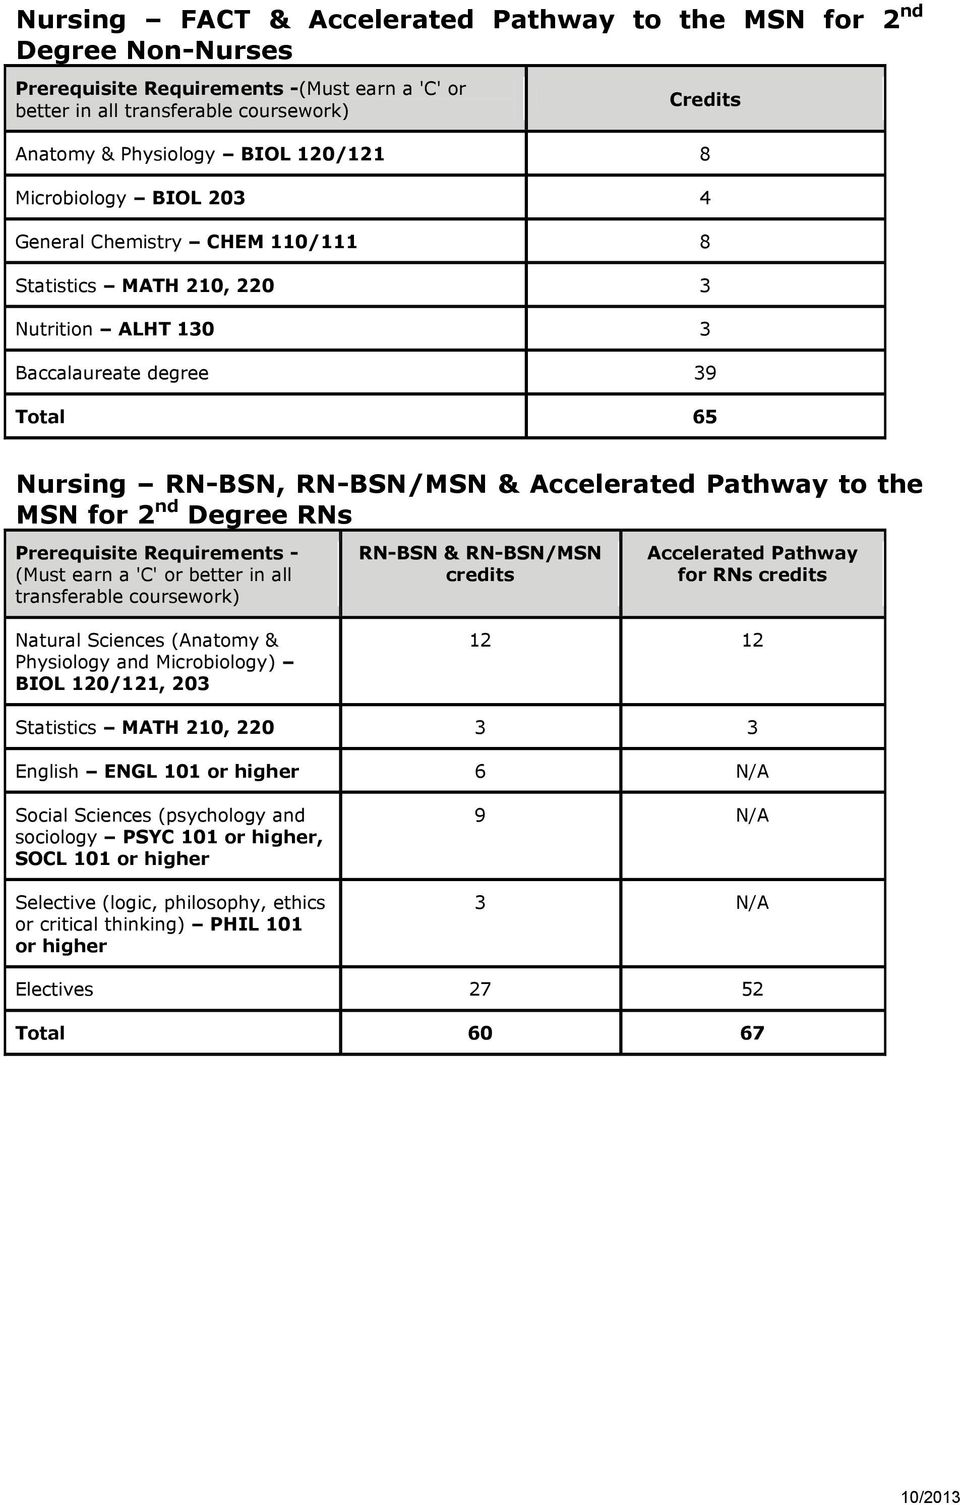 RN-BSN & RN-BSN/MSN Accelerated Pathway for RNs Natural Sciences (Anatomy & Physiology and Microbiology) BIOL 120/121, 20 12 12 Statistics MATH 210, 220 English ENGL 101 or higher 6 N/A